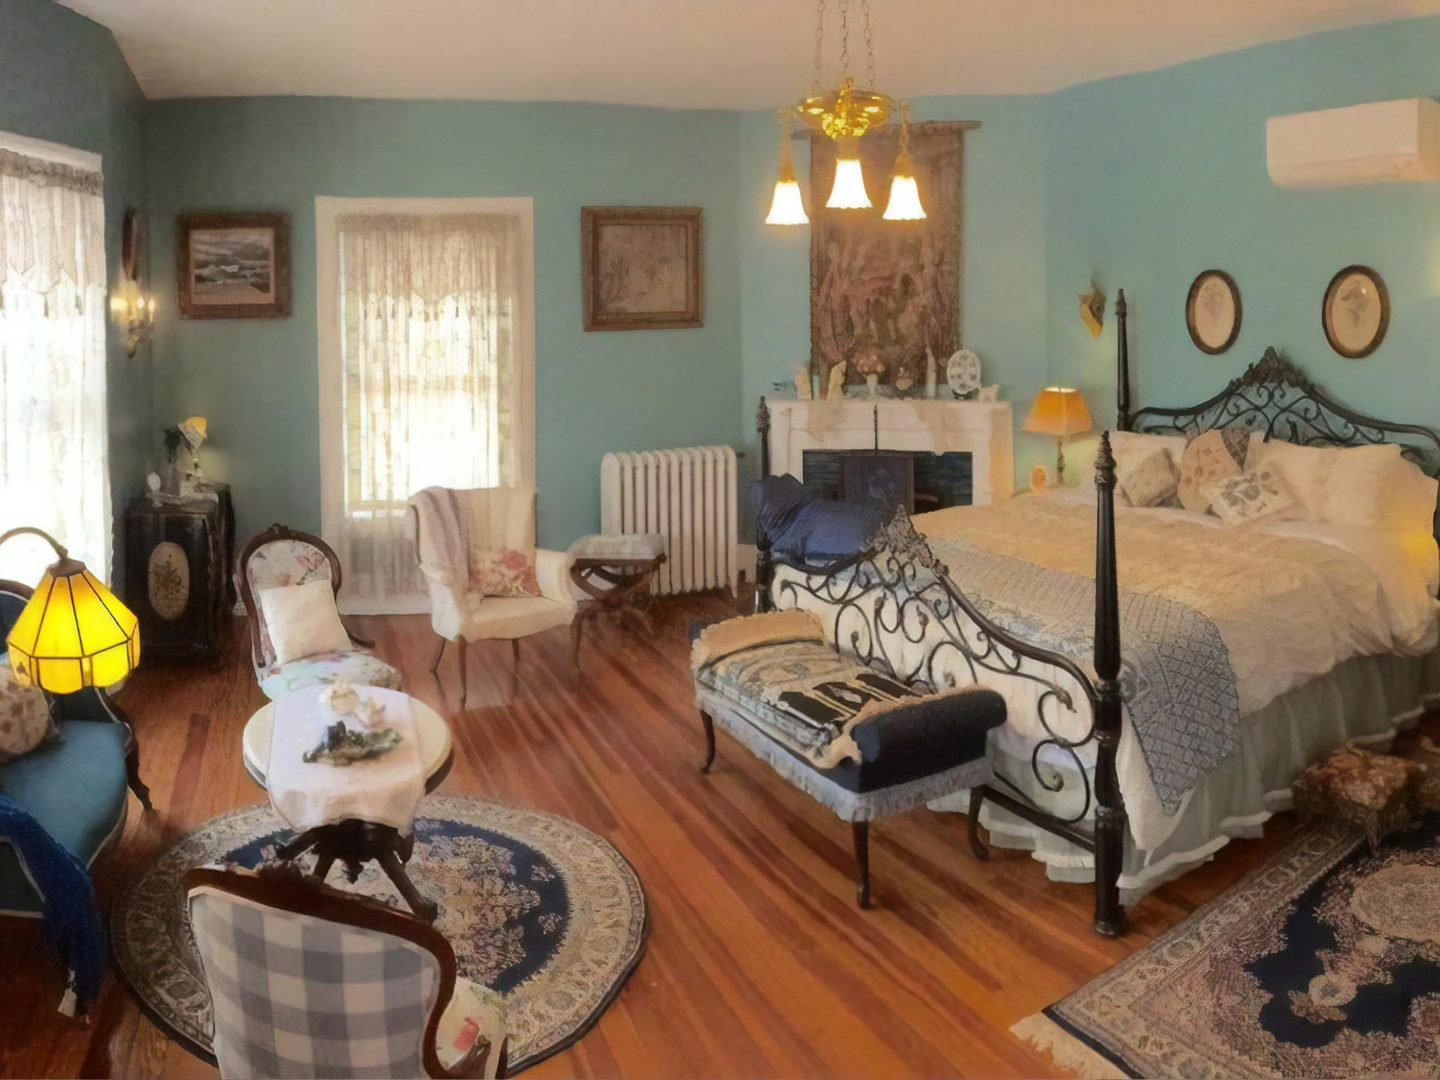 A bedroom with a fireplace in a living room at Berkeley House Bed & Breakfast.